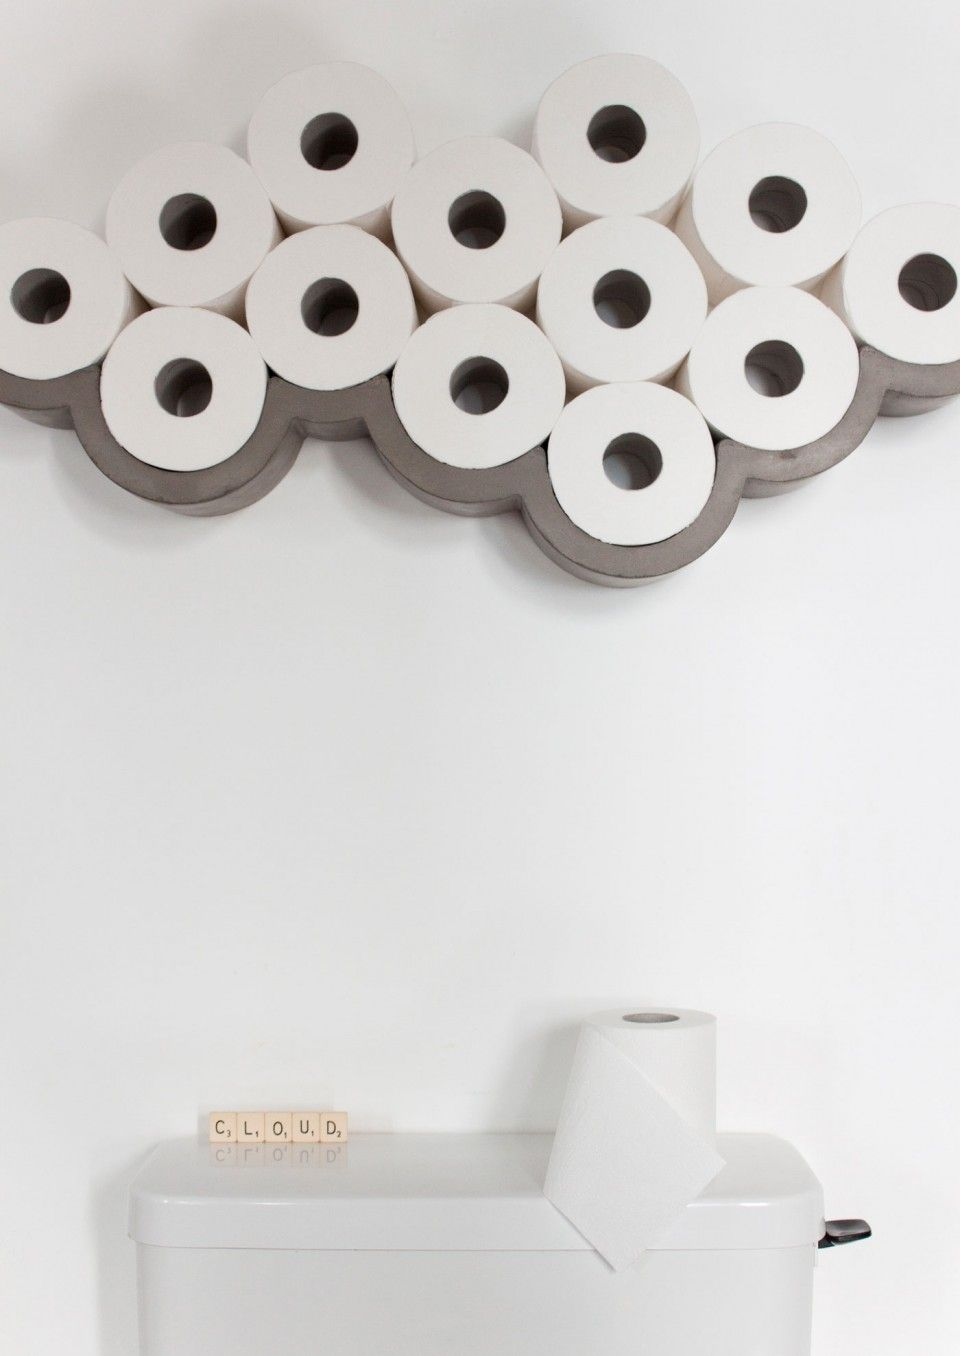 Cloud Toilet Paper Shelf By Lyon Beton Cloud Toilet Paper Holder Cloud Toilet Paper Shelf Small Toilet